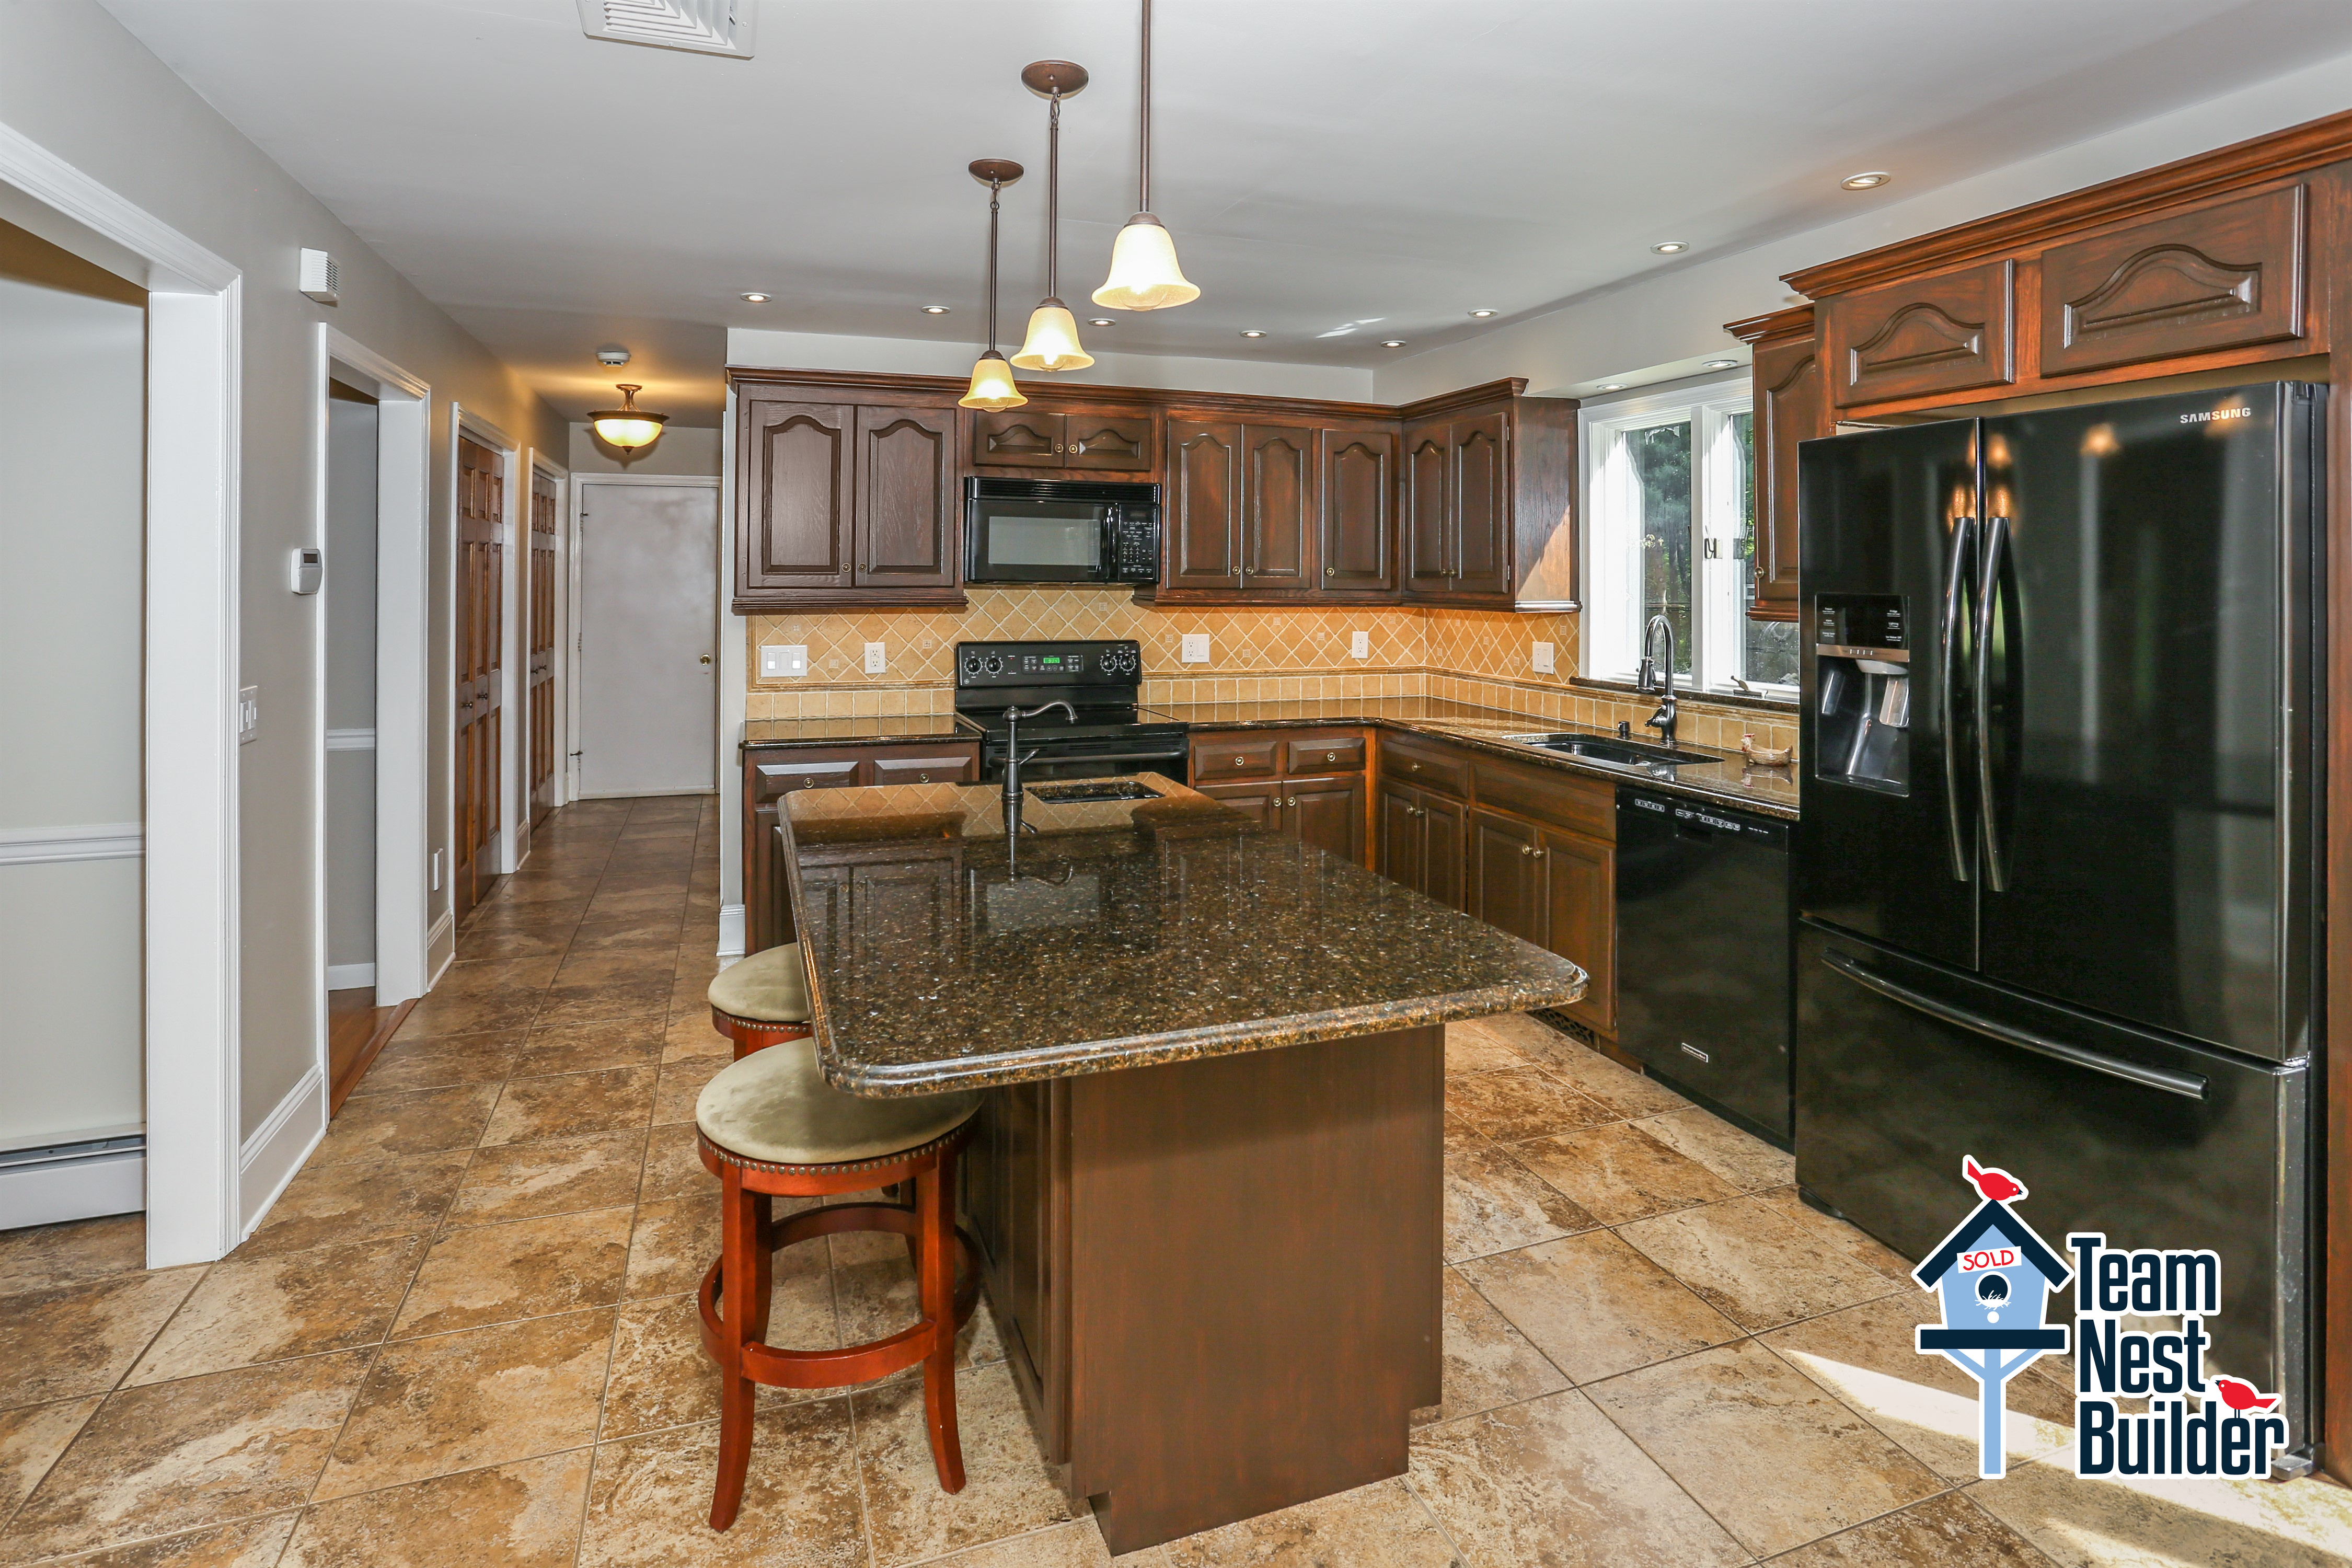 Check out this super kitchen!